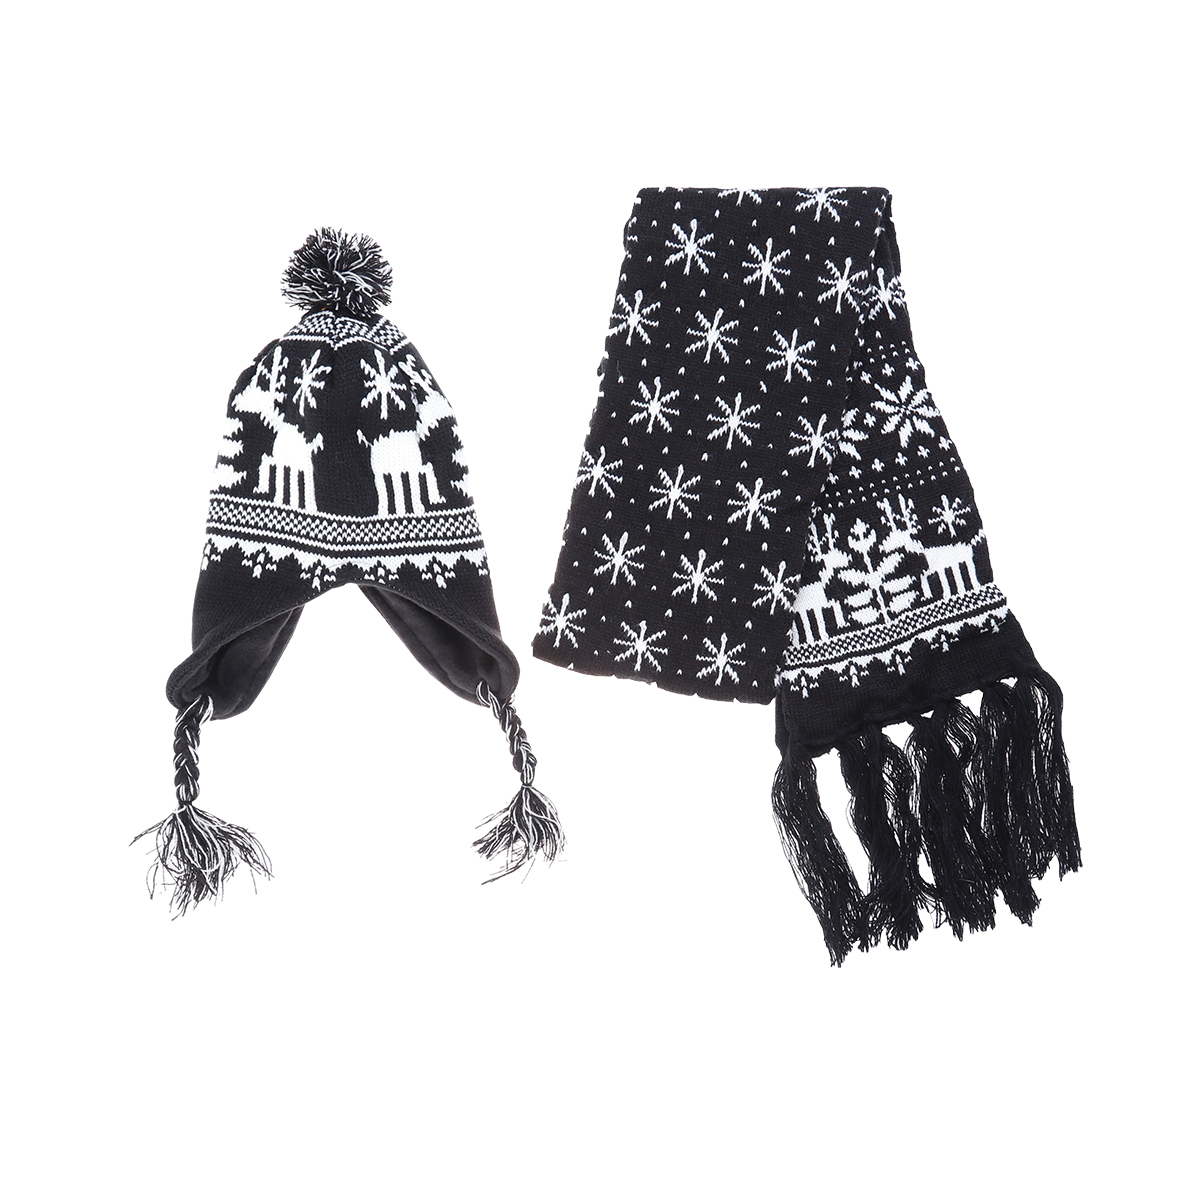 2PCS Unisex Christmas Snowflake Elk Pattern Lovely Acrylic Wool Scarf Hat Set For Women Men